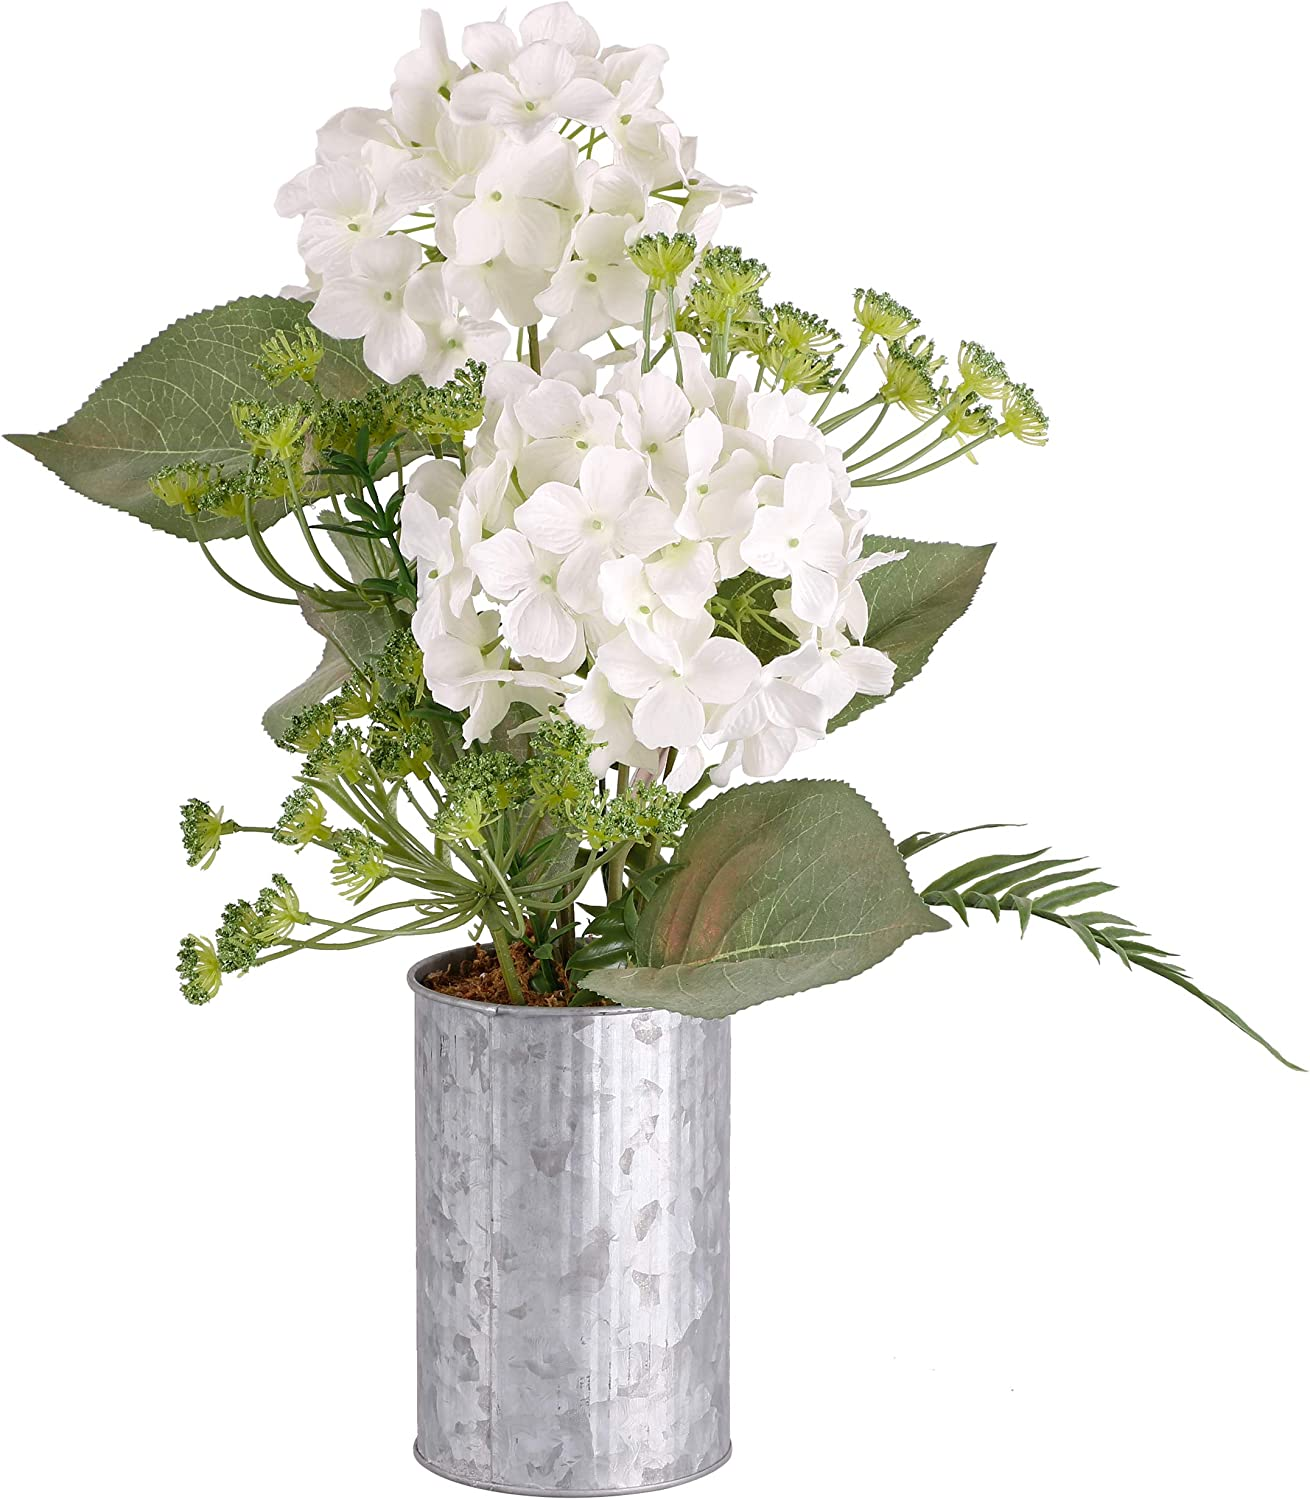 TERESA'S COLLECTIONS Artificial Hydrangea Flower Potted Faux Bouquets, Hydrangea Fake Flower Arrangements with Metal Planter for Living Room, Wedding, Home, Office and Table Centerpieces Decorations